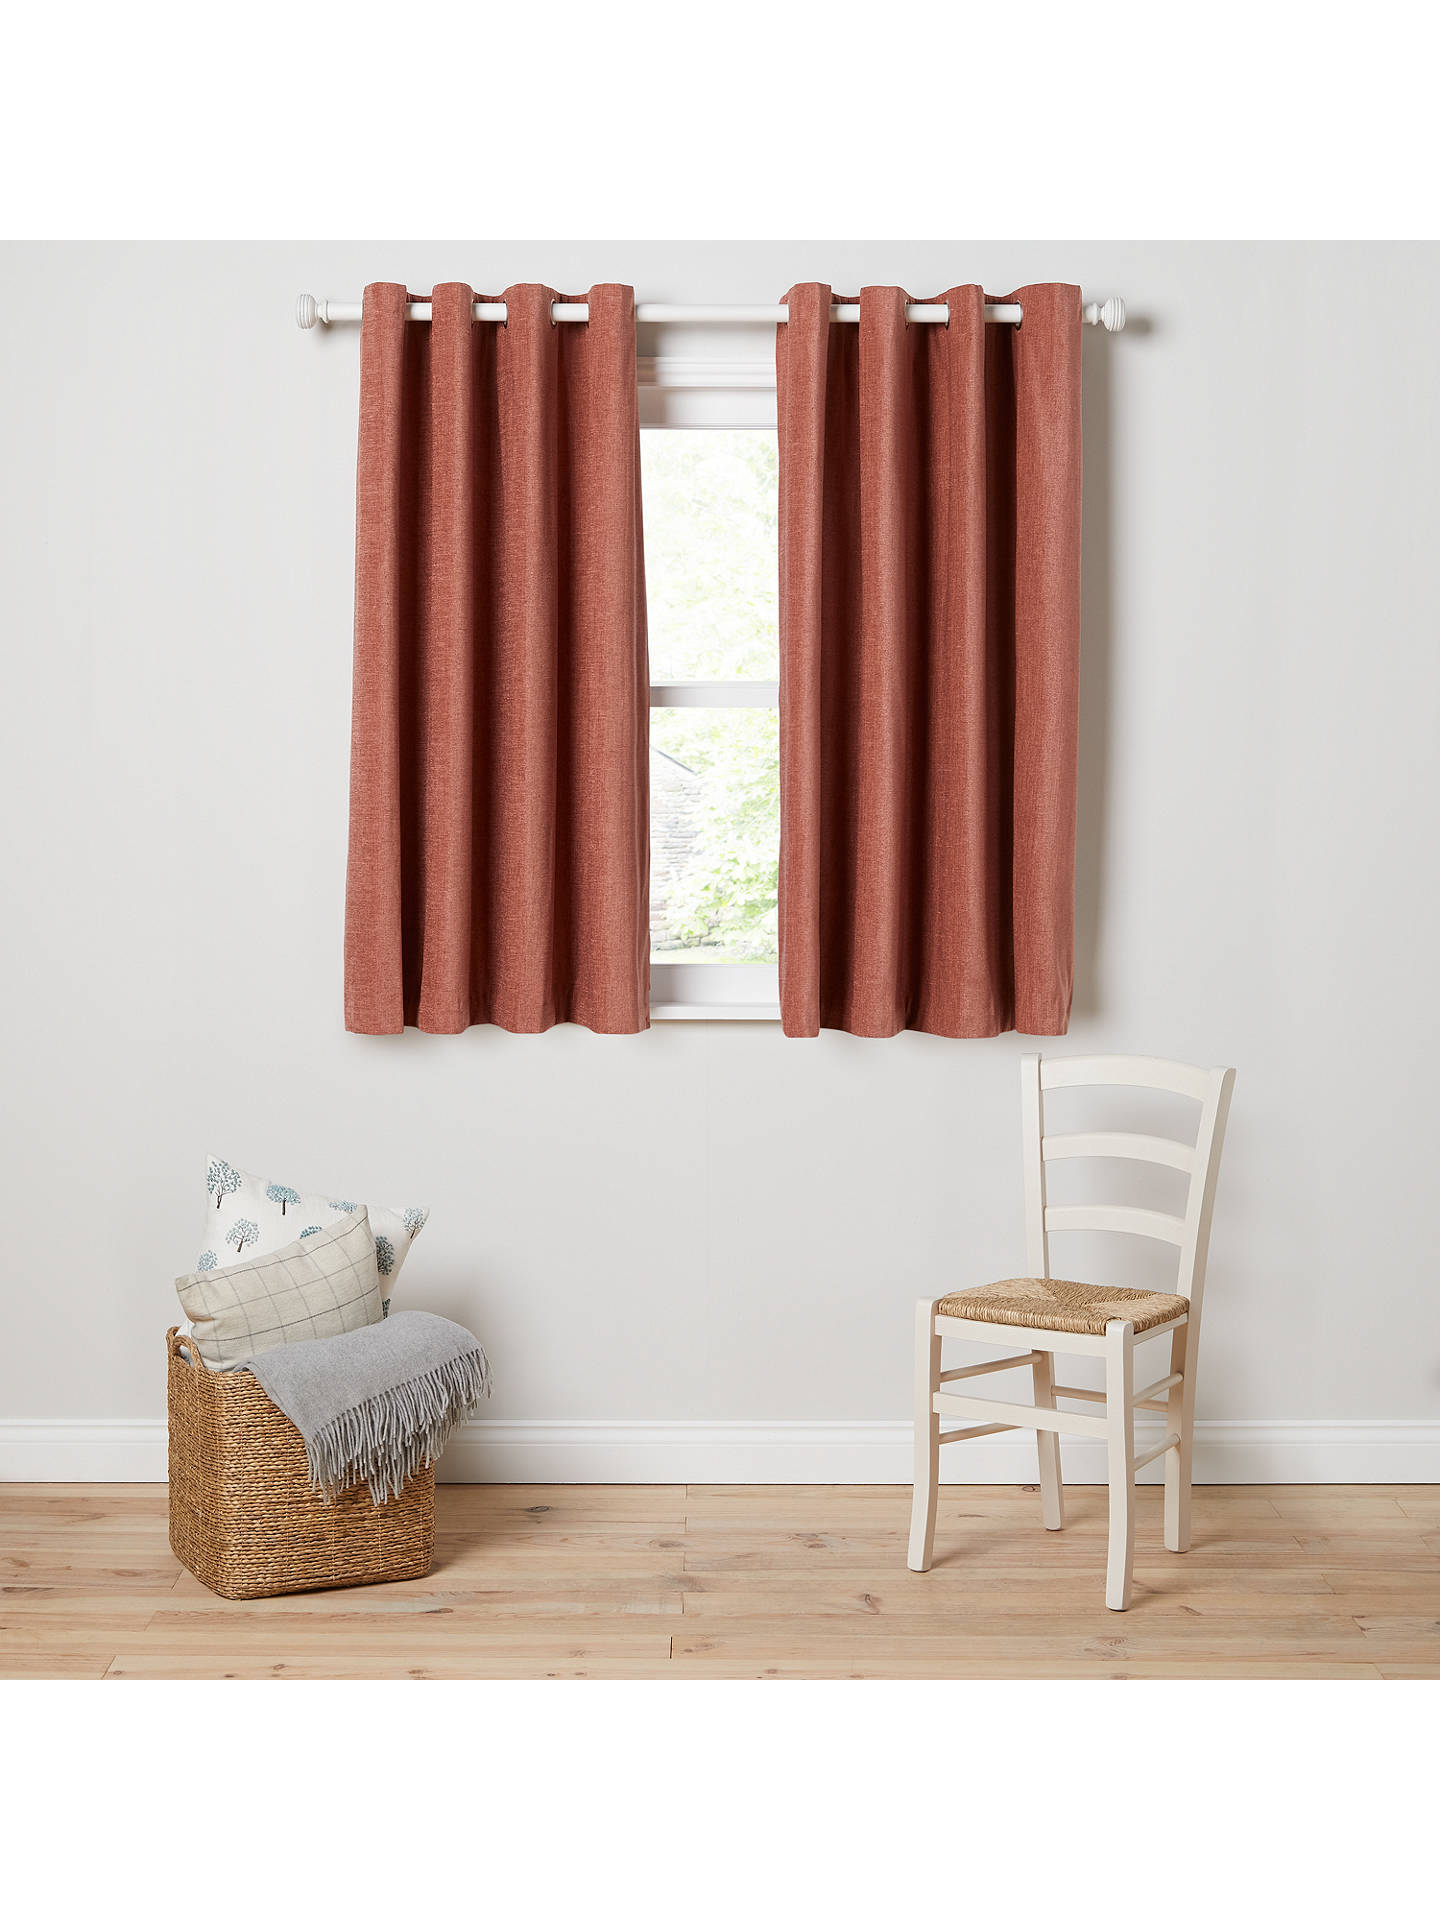 BuyJohn Lewis & Partners Chester Pair Lined Eyelet Curtains, Brick, W167 x Drop 182cm Online at johnlewis.com